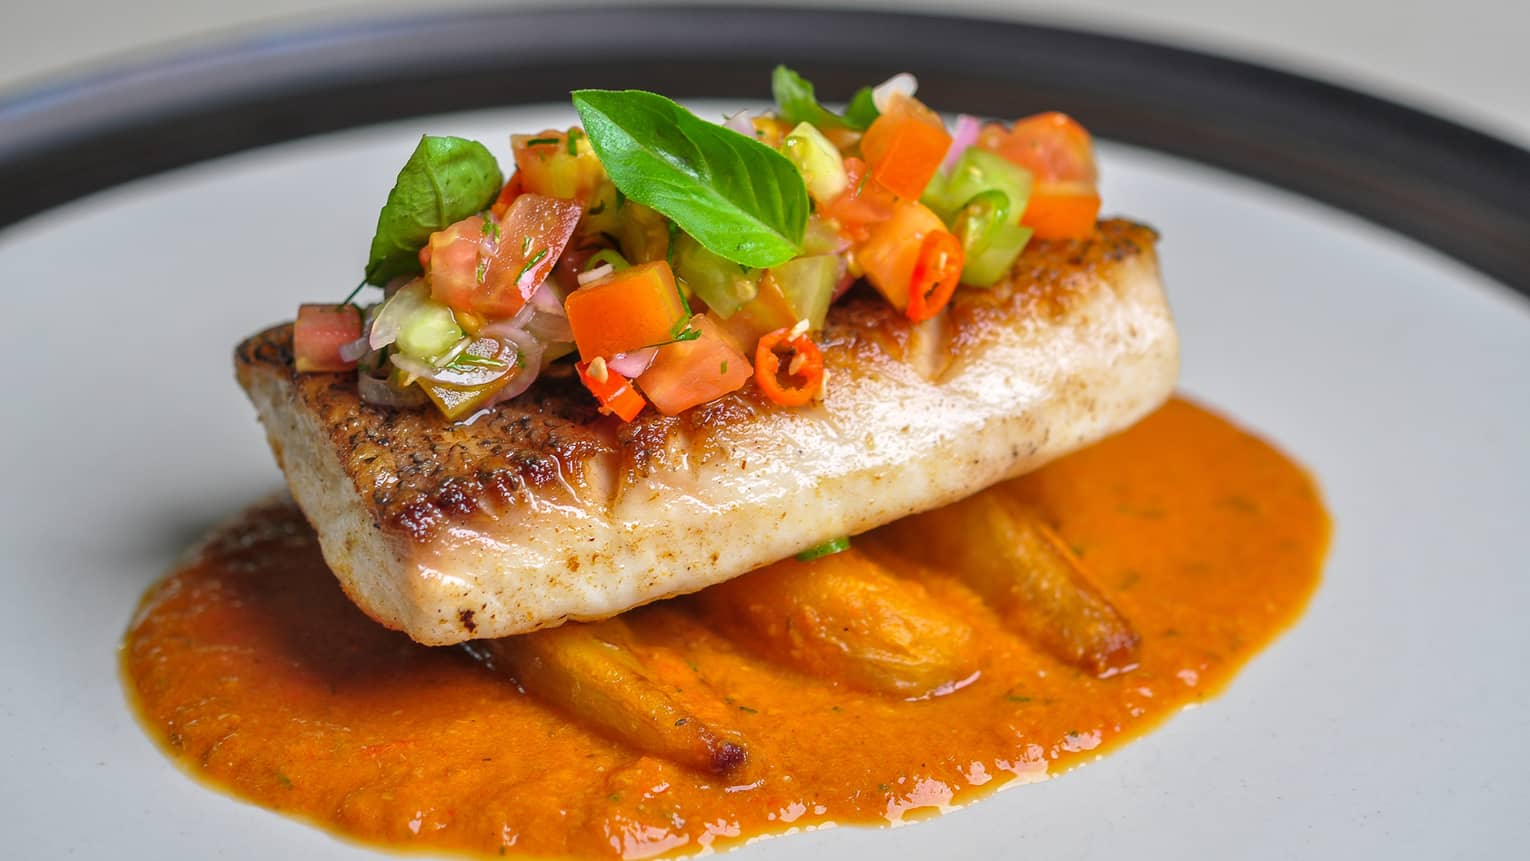 Ikan Rica Rica red snapper fillet topped with chopped vegetables, herbs and piquant dabu dabu sauce